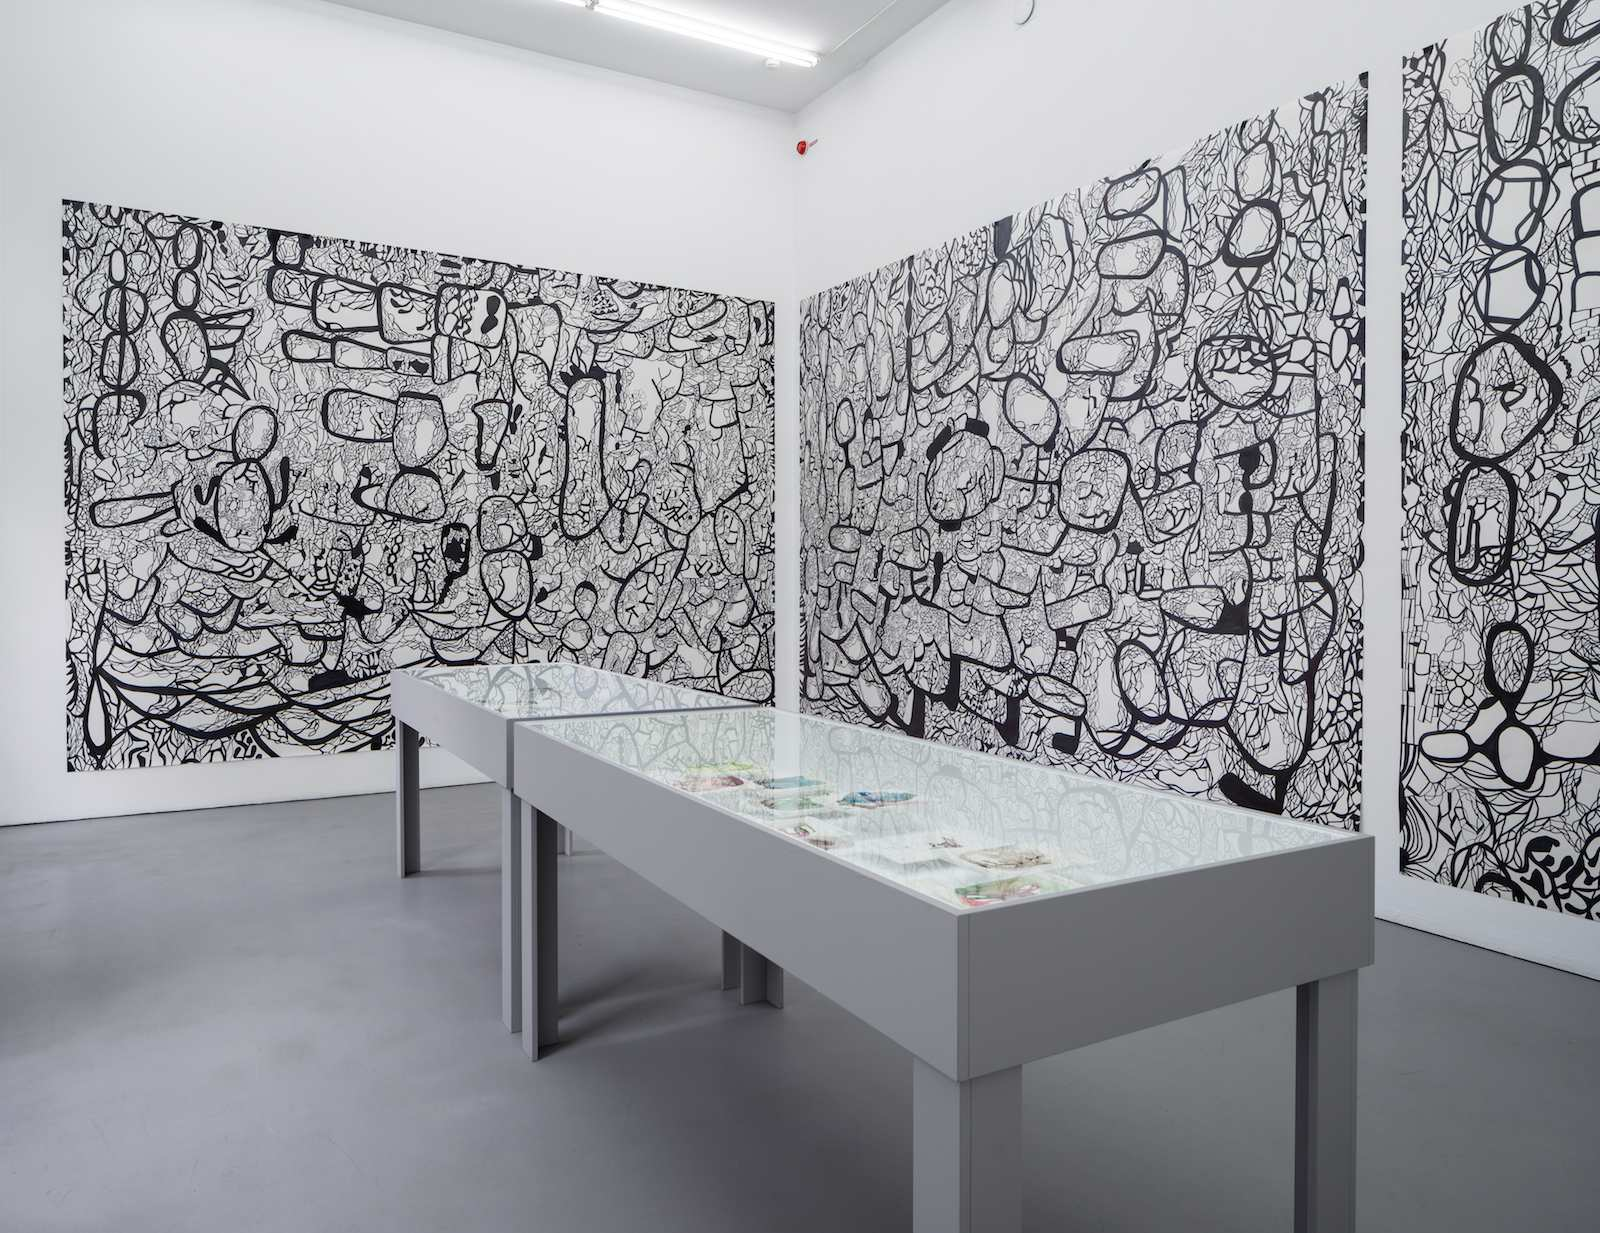 Installation view, Galleri Riis, Stockholm, 2015. Slik Livet Er / As Life Is, 2014/2015, ink on paper, 3 x 340 x 440 cm. Original drawing (three of four parts) for the commissioned work for Edvard Munch VGS, Oslo